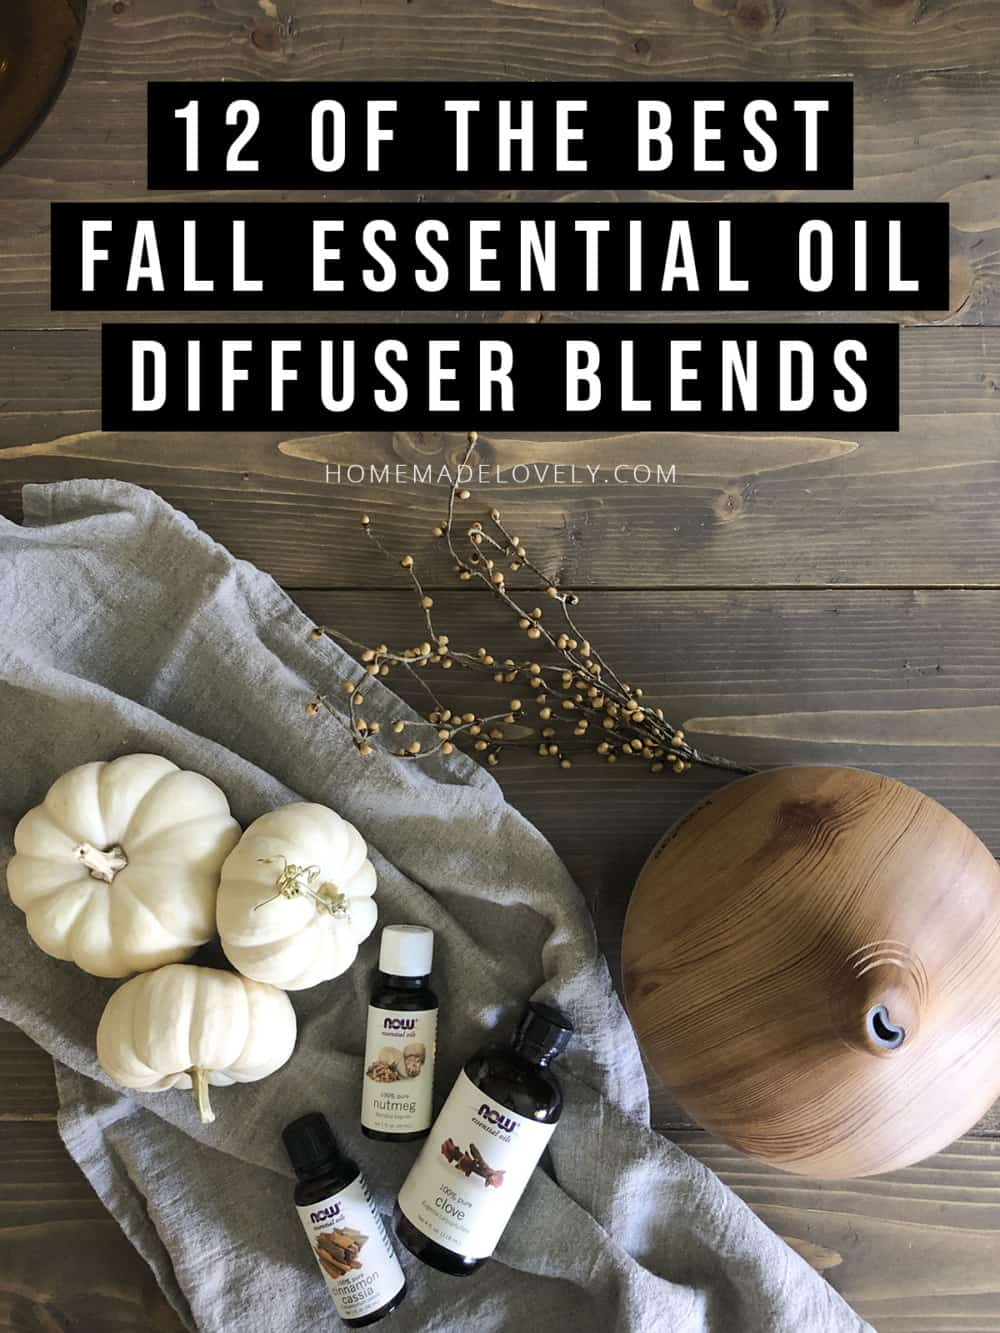 12 of the best fall essential oil diffuser blends with text overlay